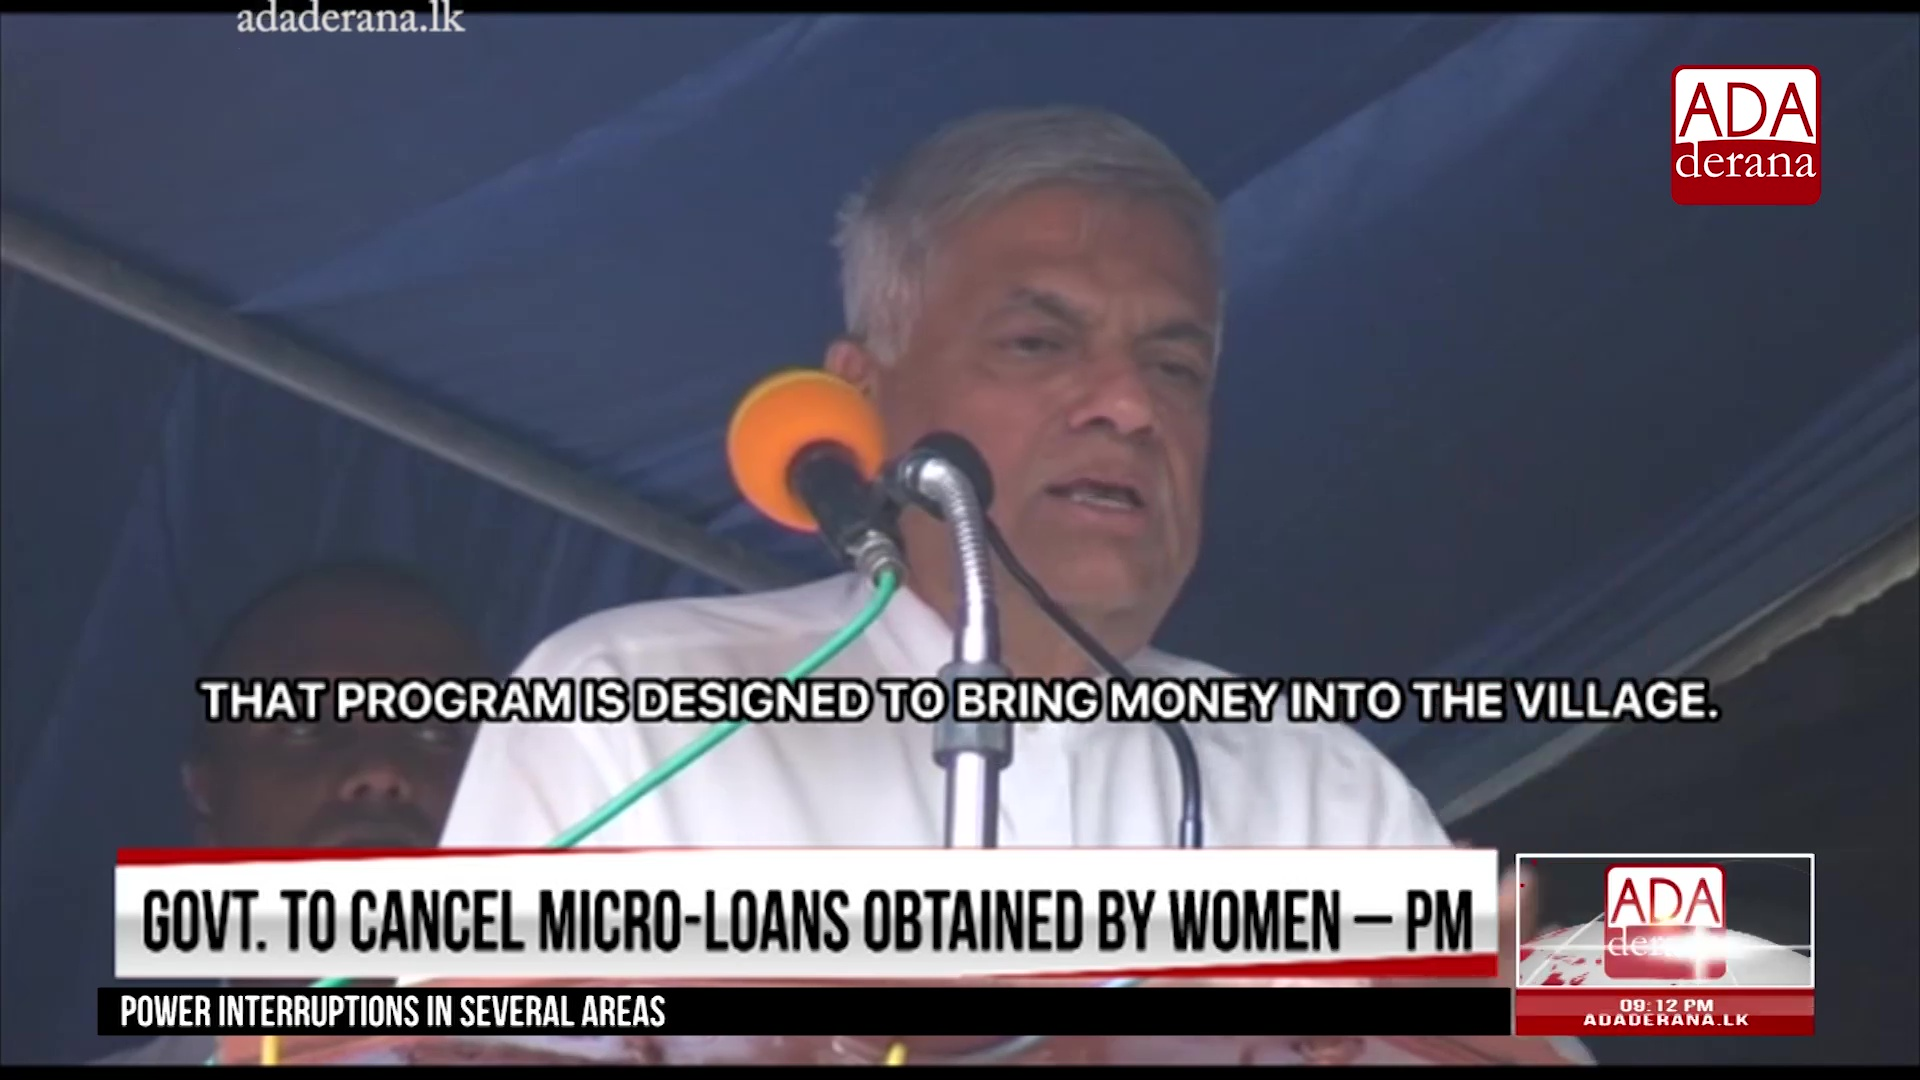 PM promises to revoke small loans taken out by rural women (English)